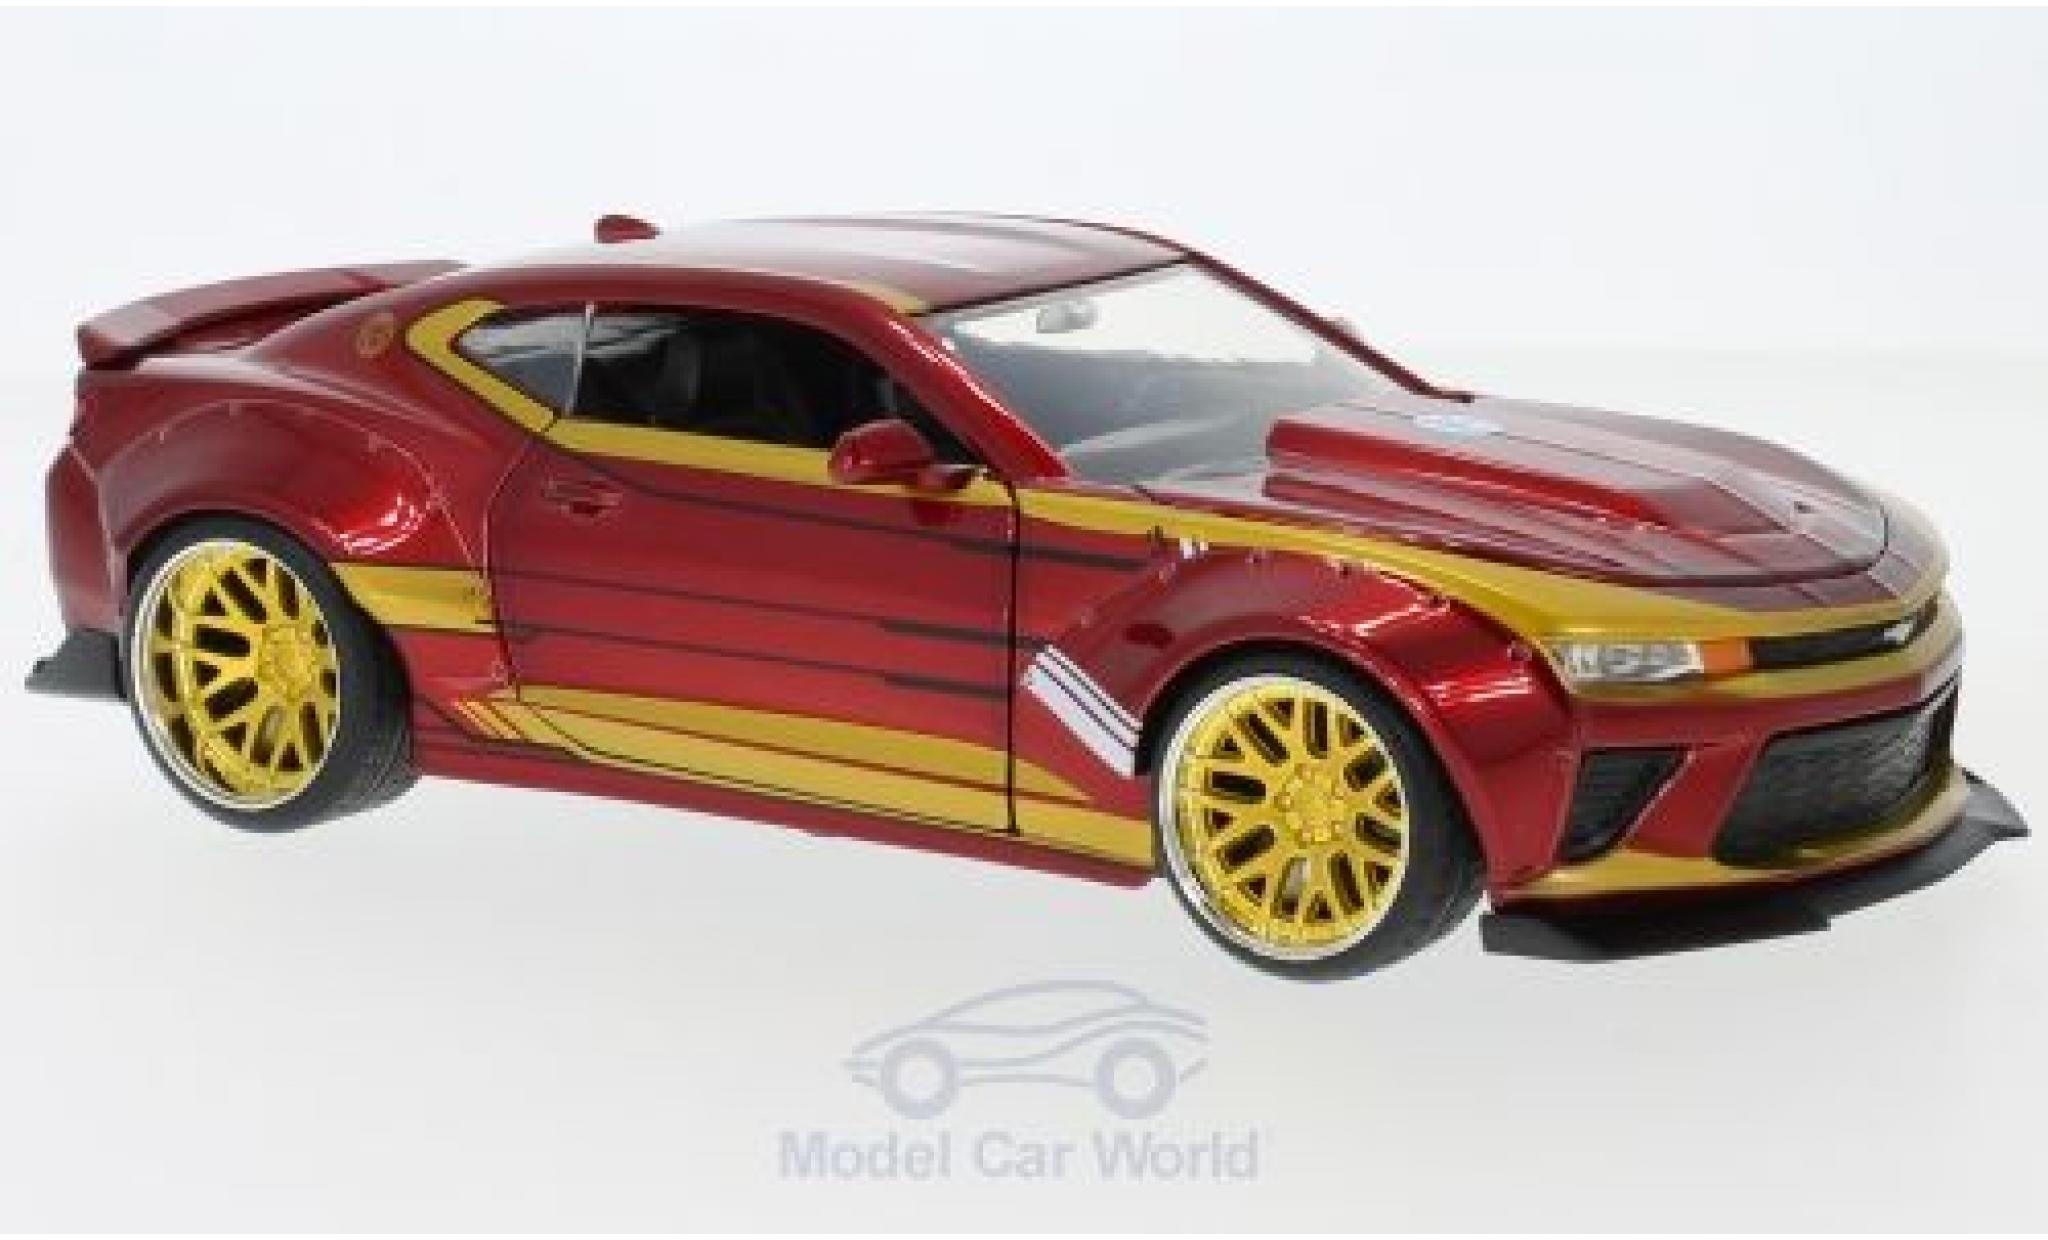 Chevrolet Camaro RS 1/24 Jada red/gold Marvel Avengers - Iron Man 2016 mit Figur